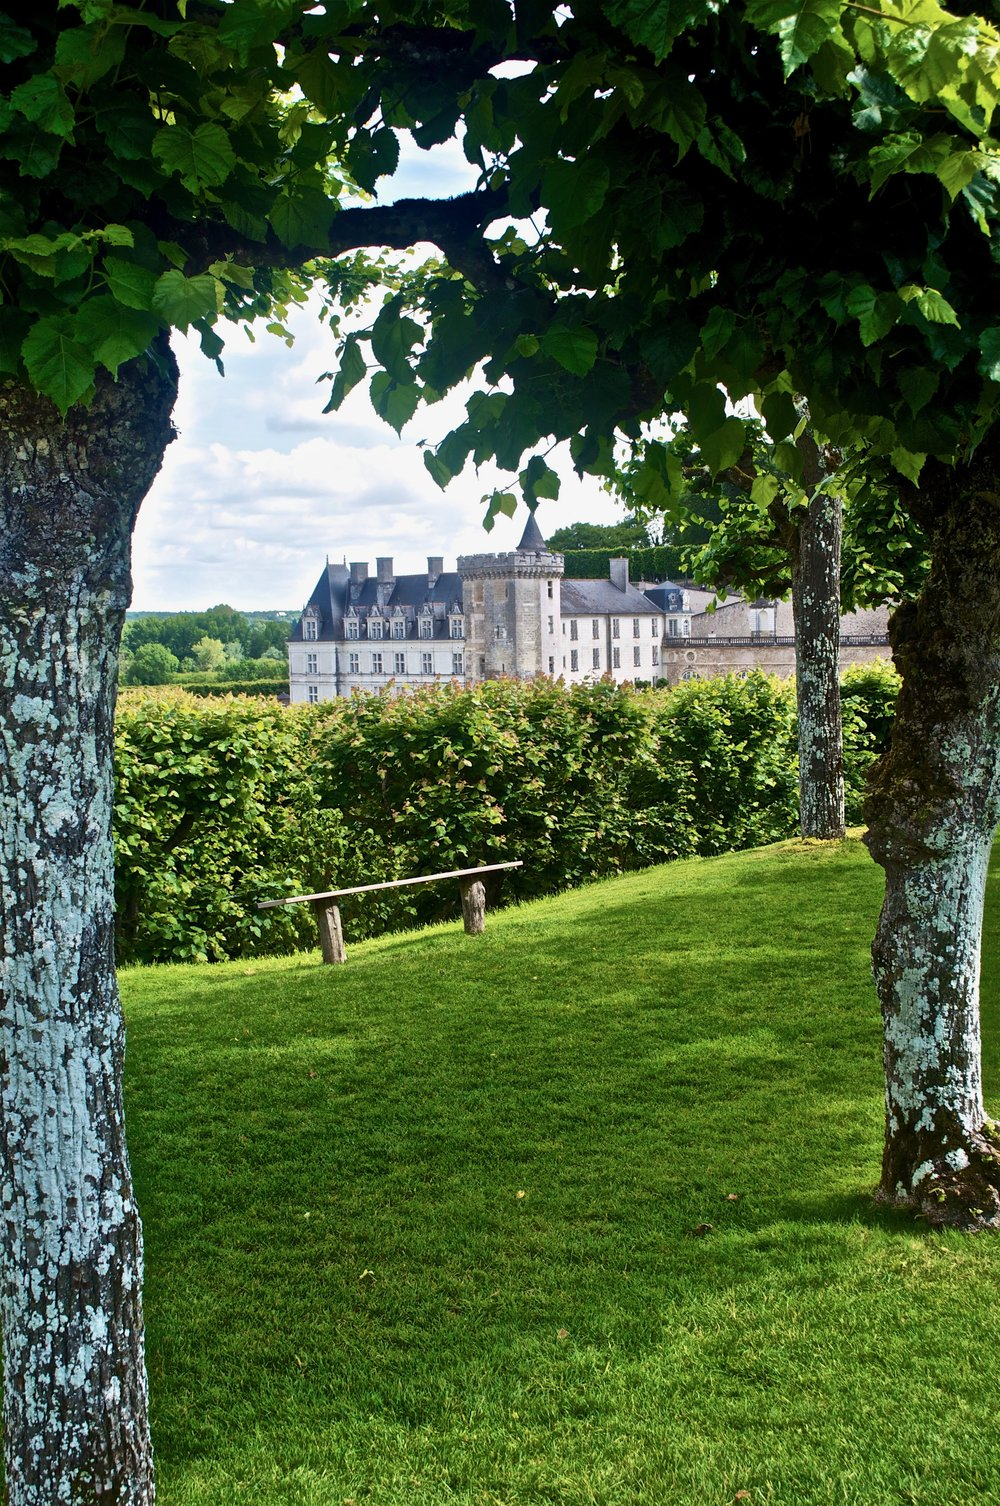 Villandry Chateau - 5 Most Magnificent Castles of the Loire Valley - A Happy Passport #chateau #castle #france #villandry